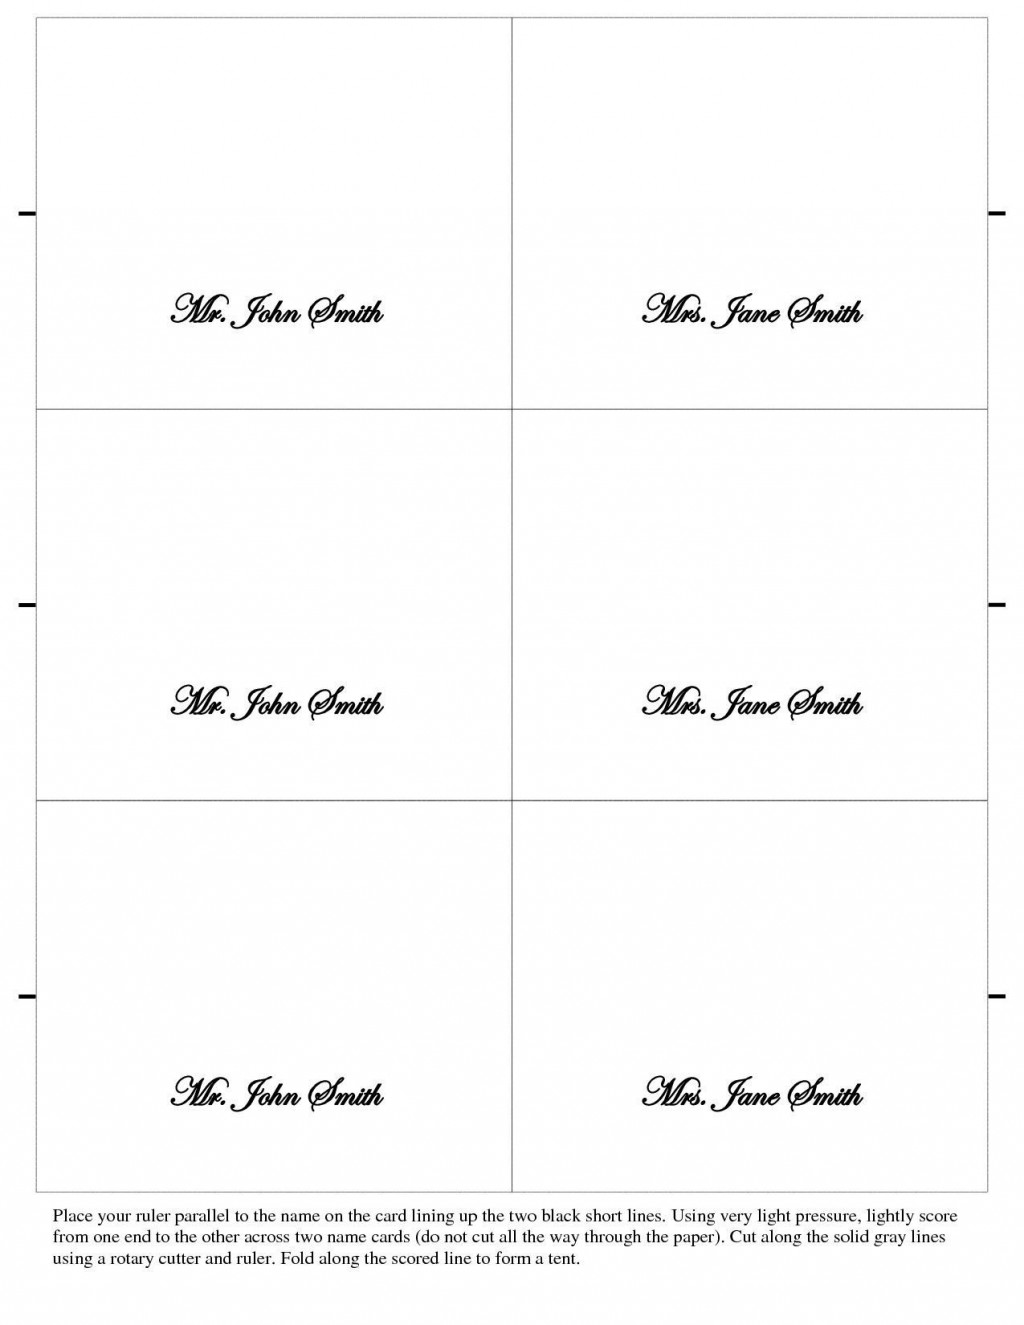 005 Unbelievable Name Place Card Template Free Download Highest Clarity  Psd VectorLarge